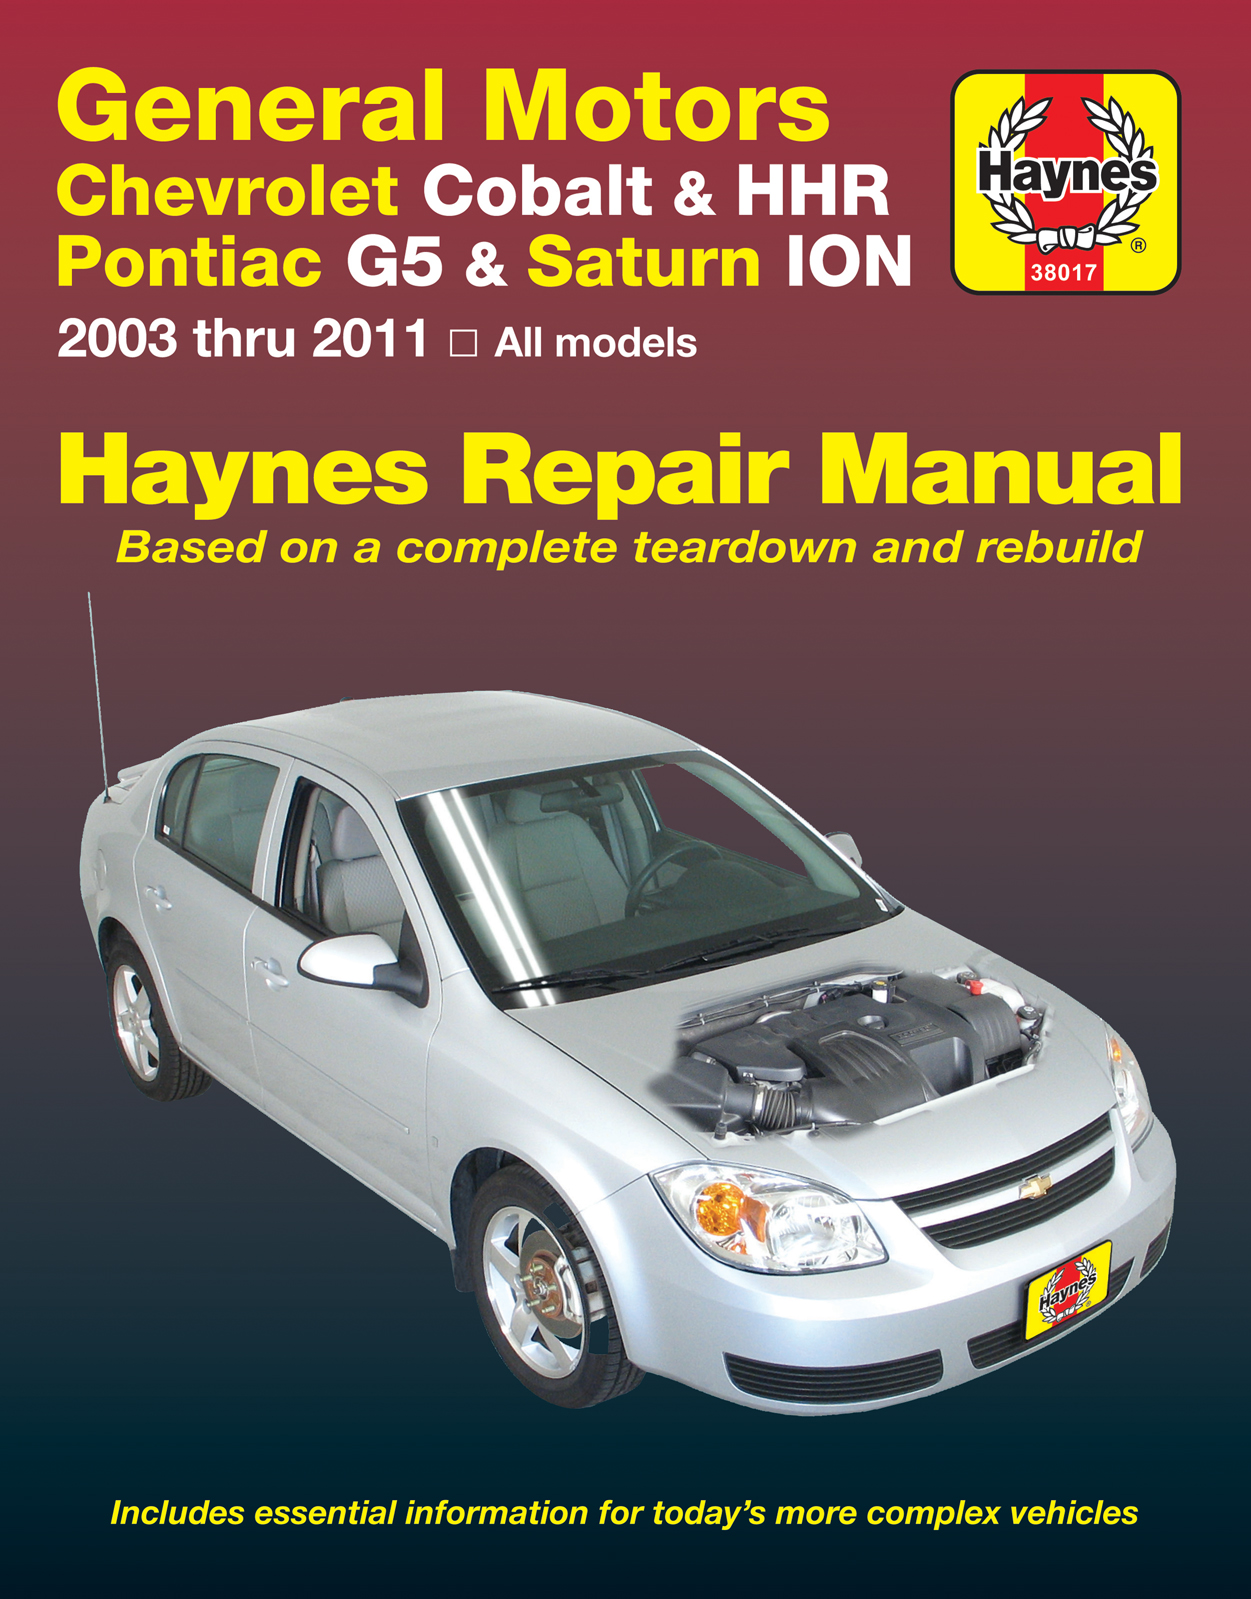 Chevrolet Cobalt (2005 - 2010) Repair Manuals